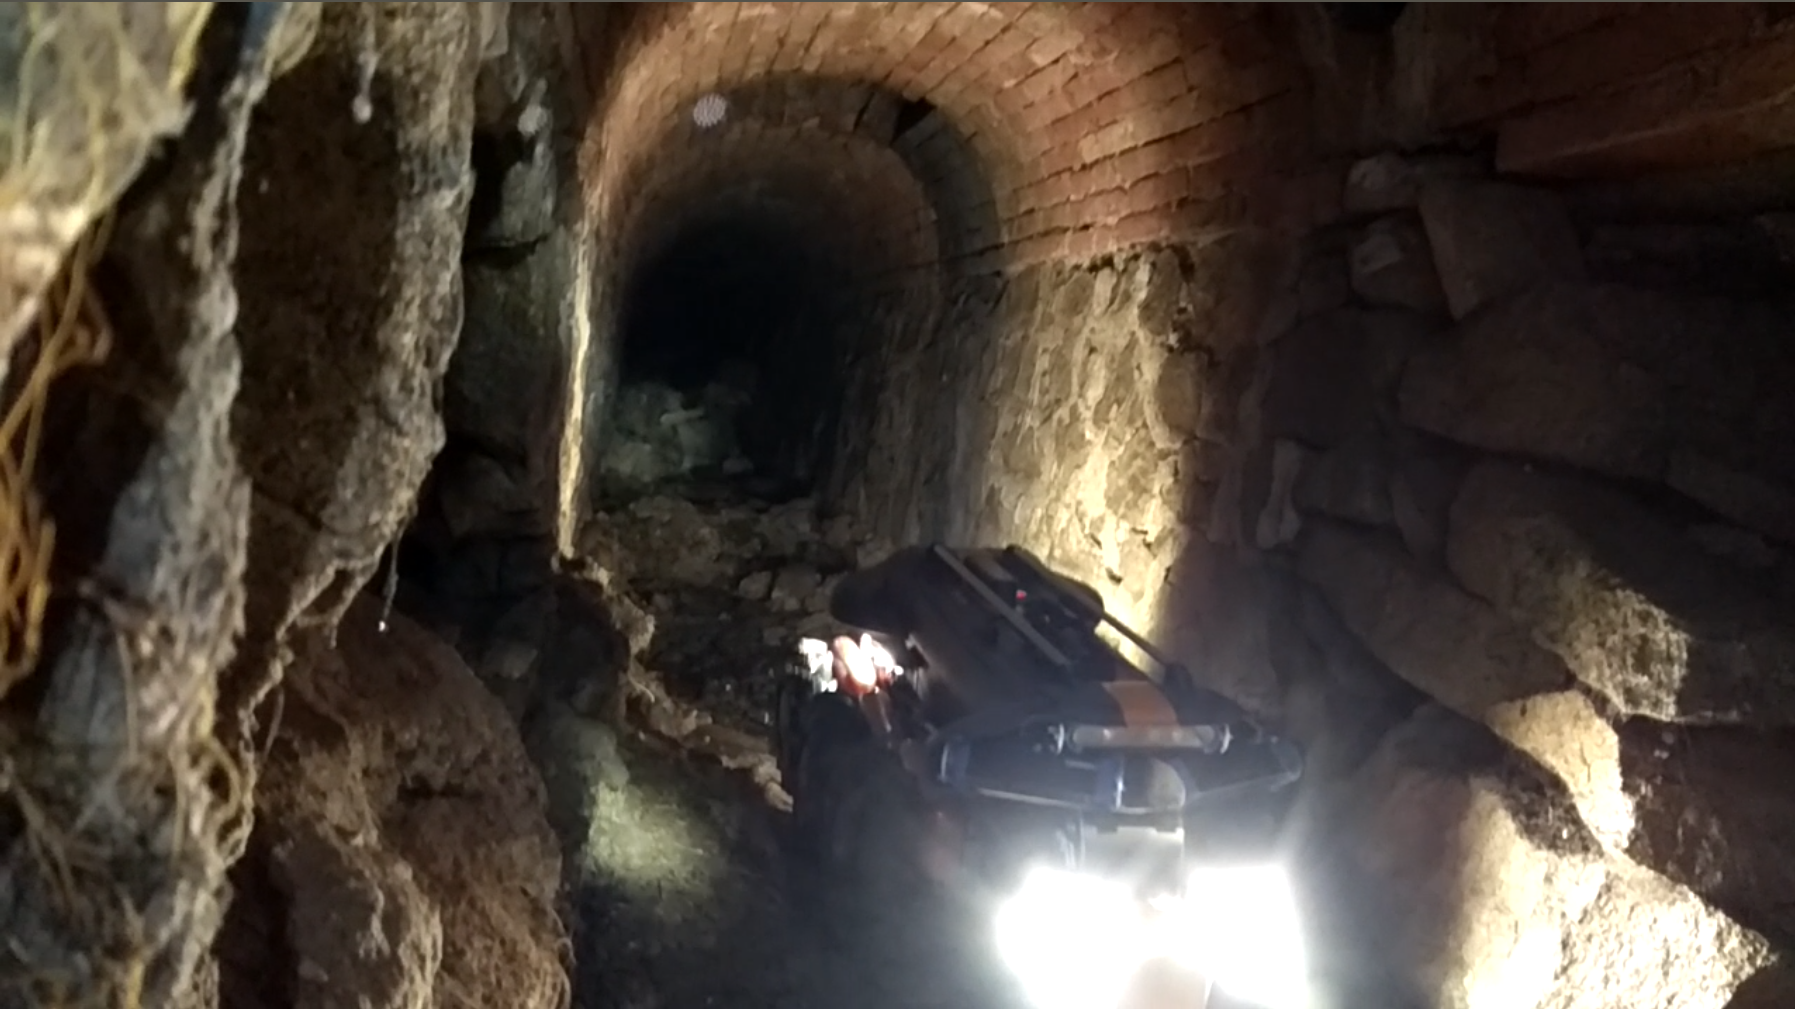 SIAR robot on the Sewers of Barcelona